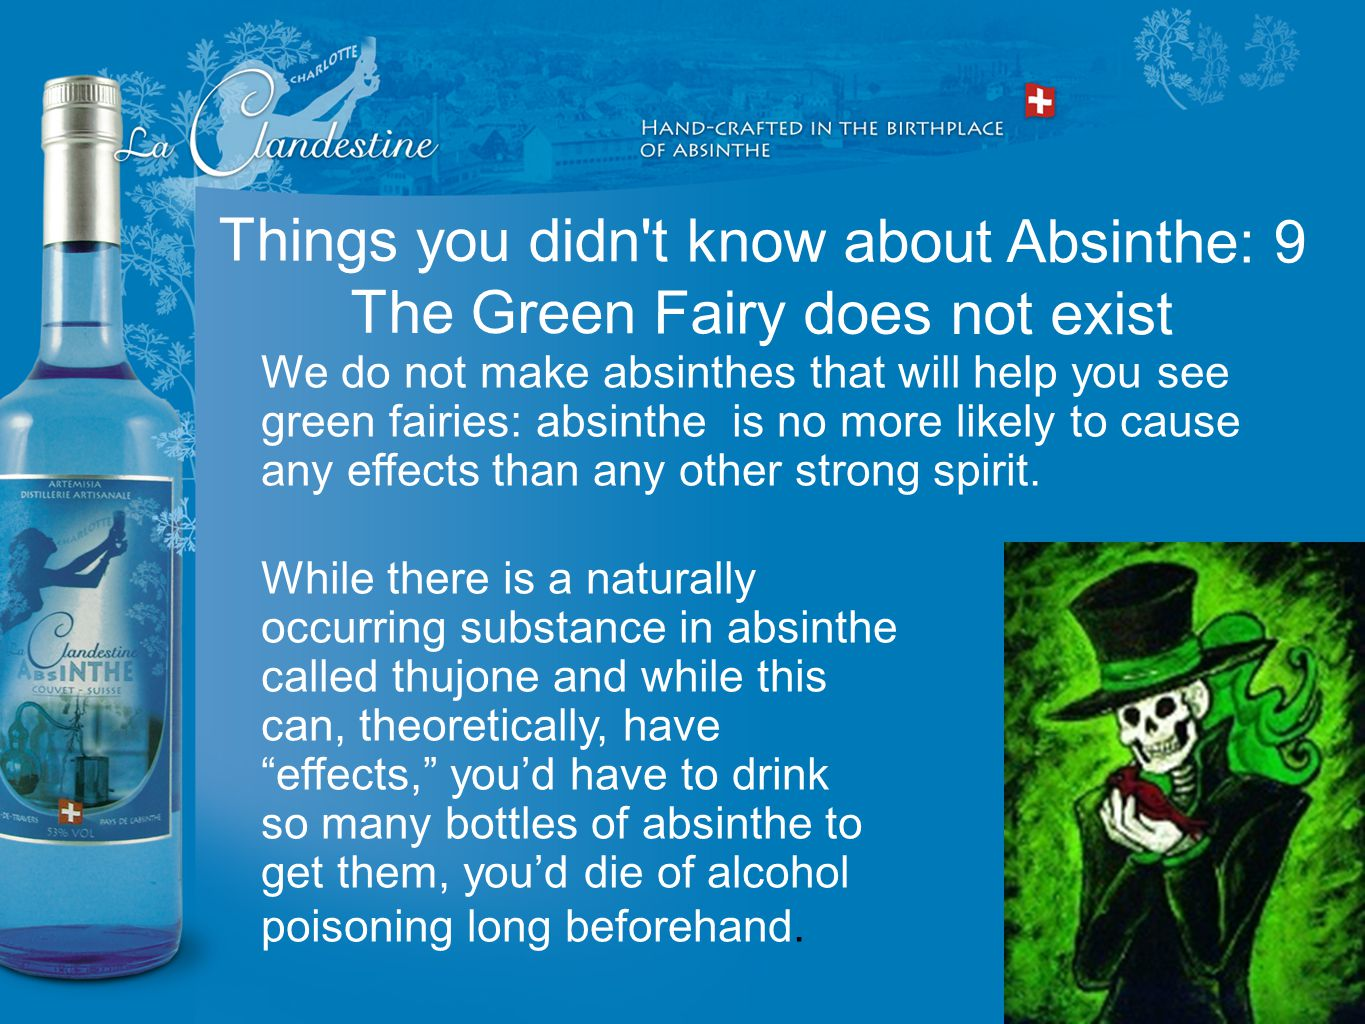 We do not make absinthes that will help you see green fairies: absinthe is no more likely to cause any effects than any other strong spirit. While the